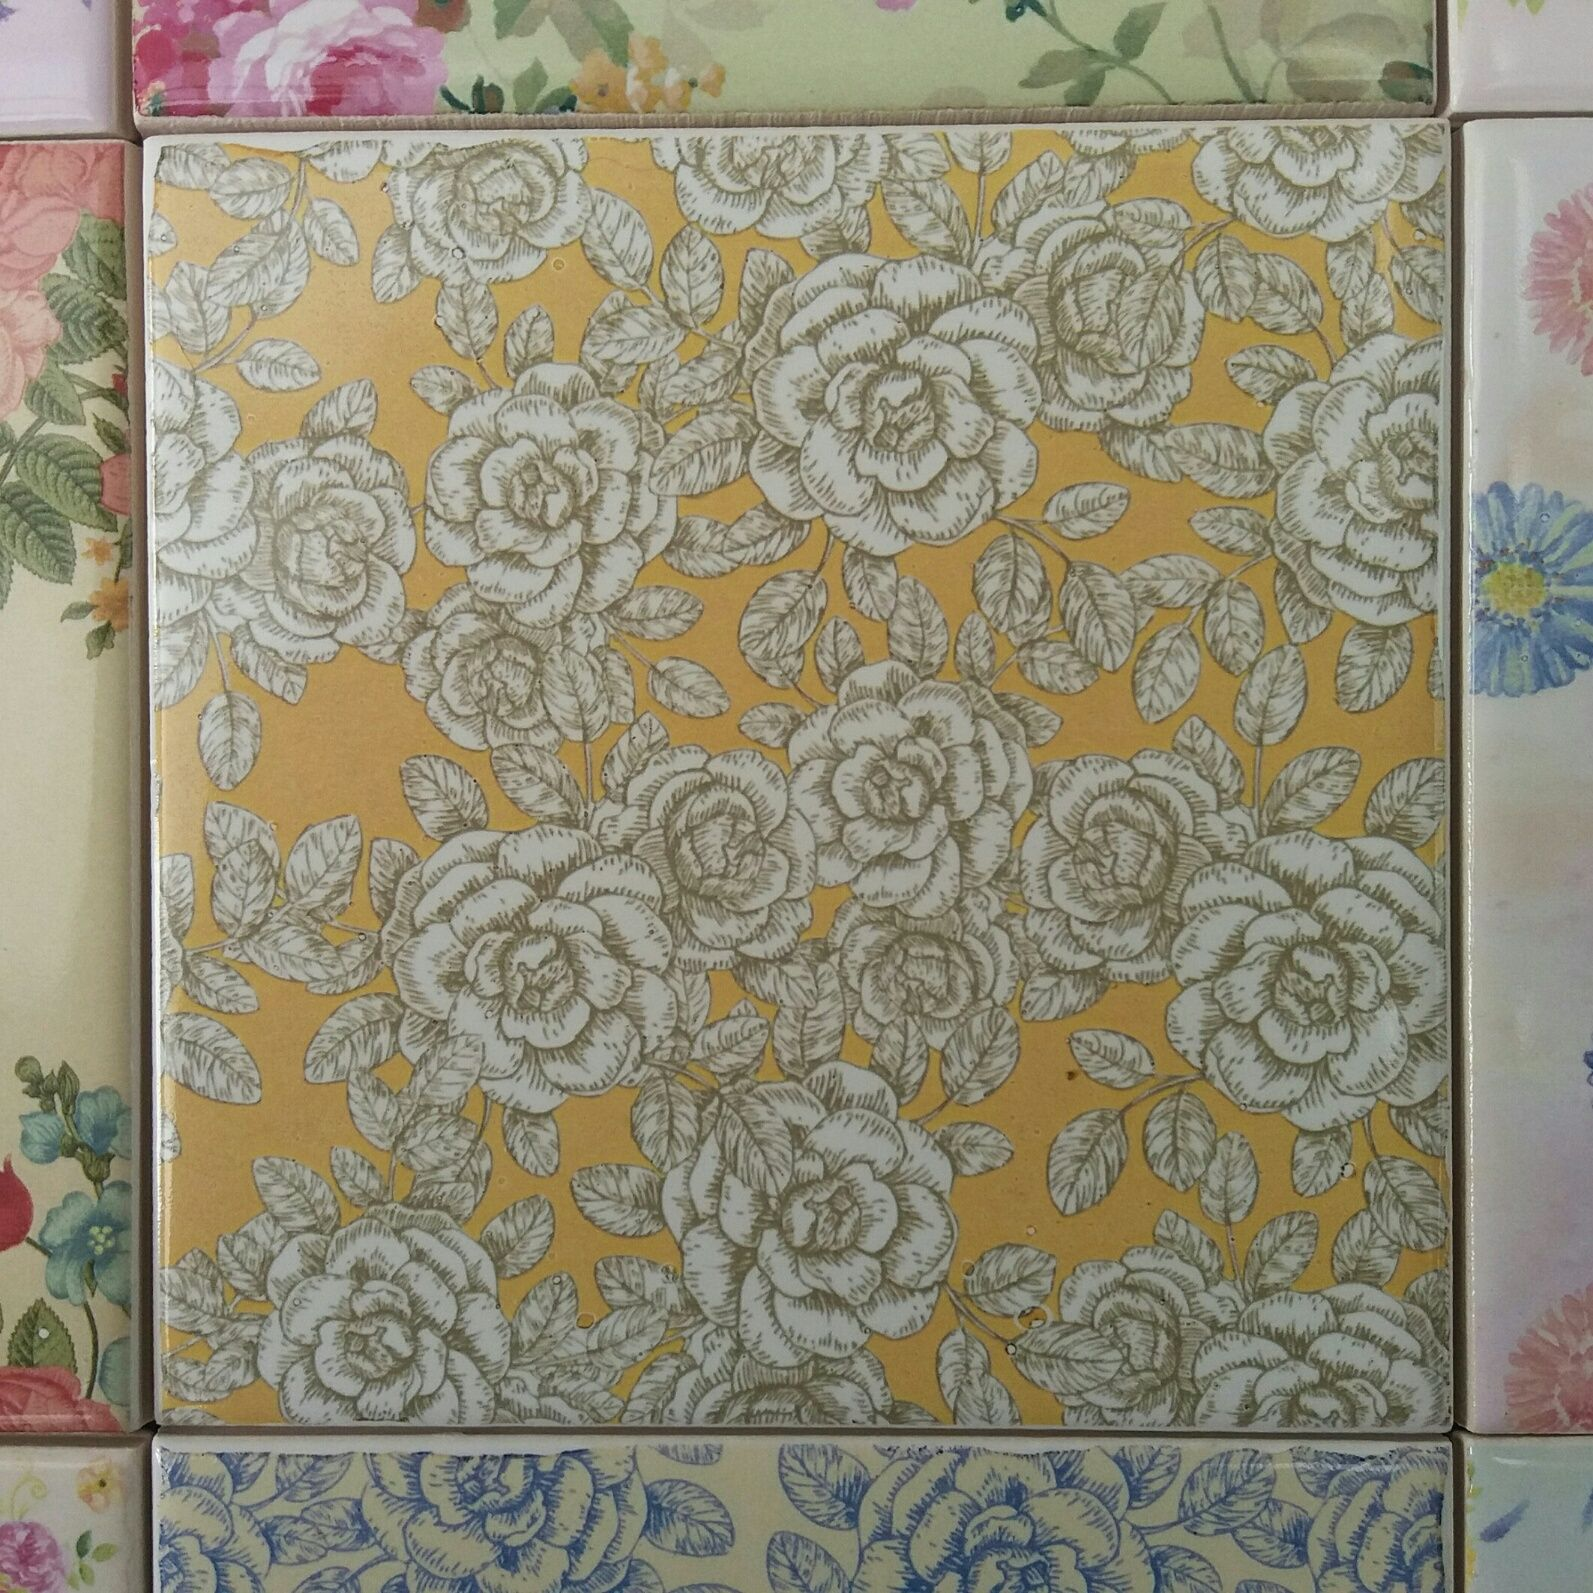 Vintage style yellow and white roses patterned ceramic wall tile vintage style yellow and white roses patterned ceramic wall tile by floral tiles use several dailygadgetfo Image collections